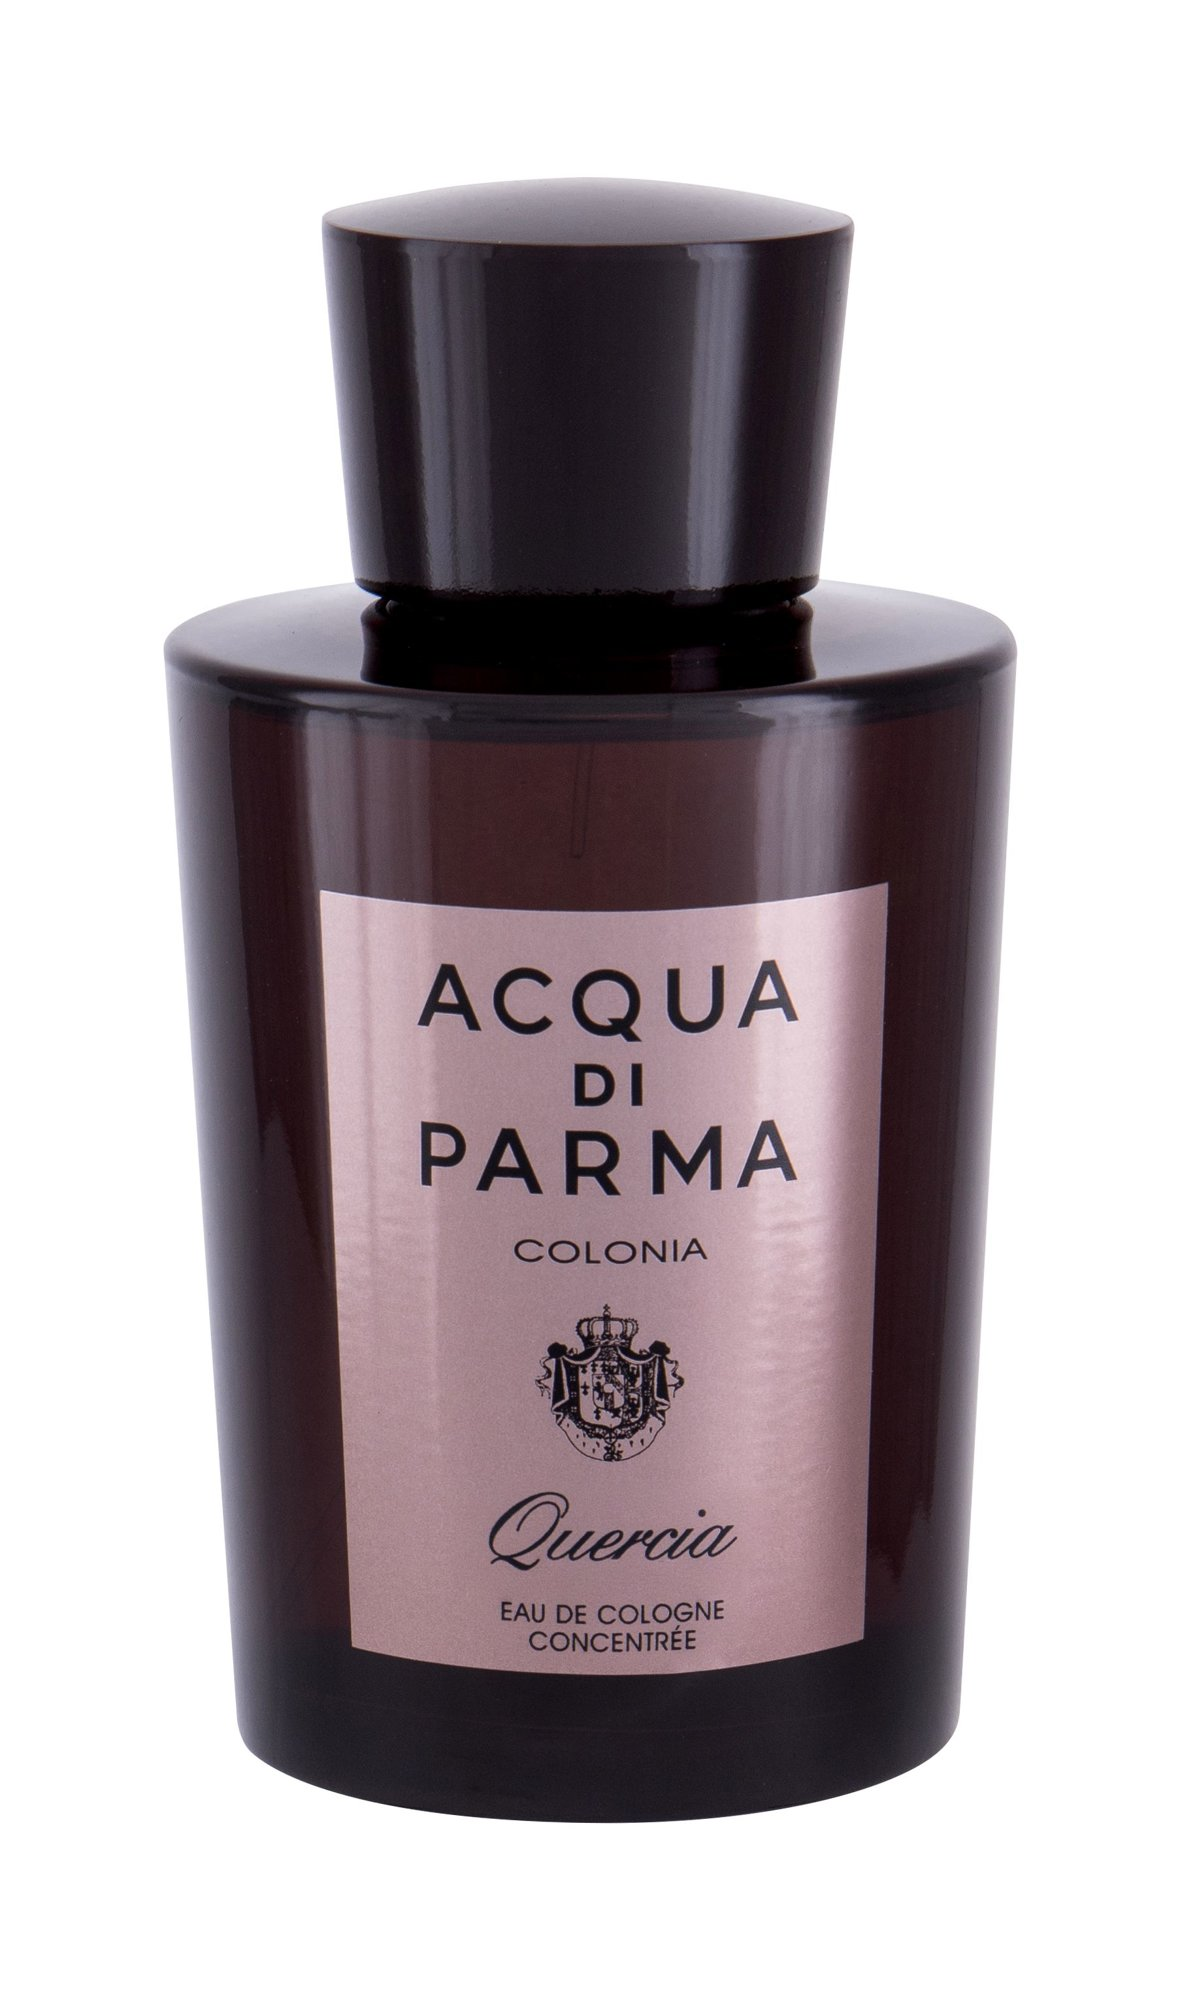 Acqua di Parma Colonia Quercia, edc 180ml